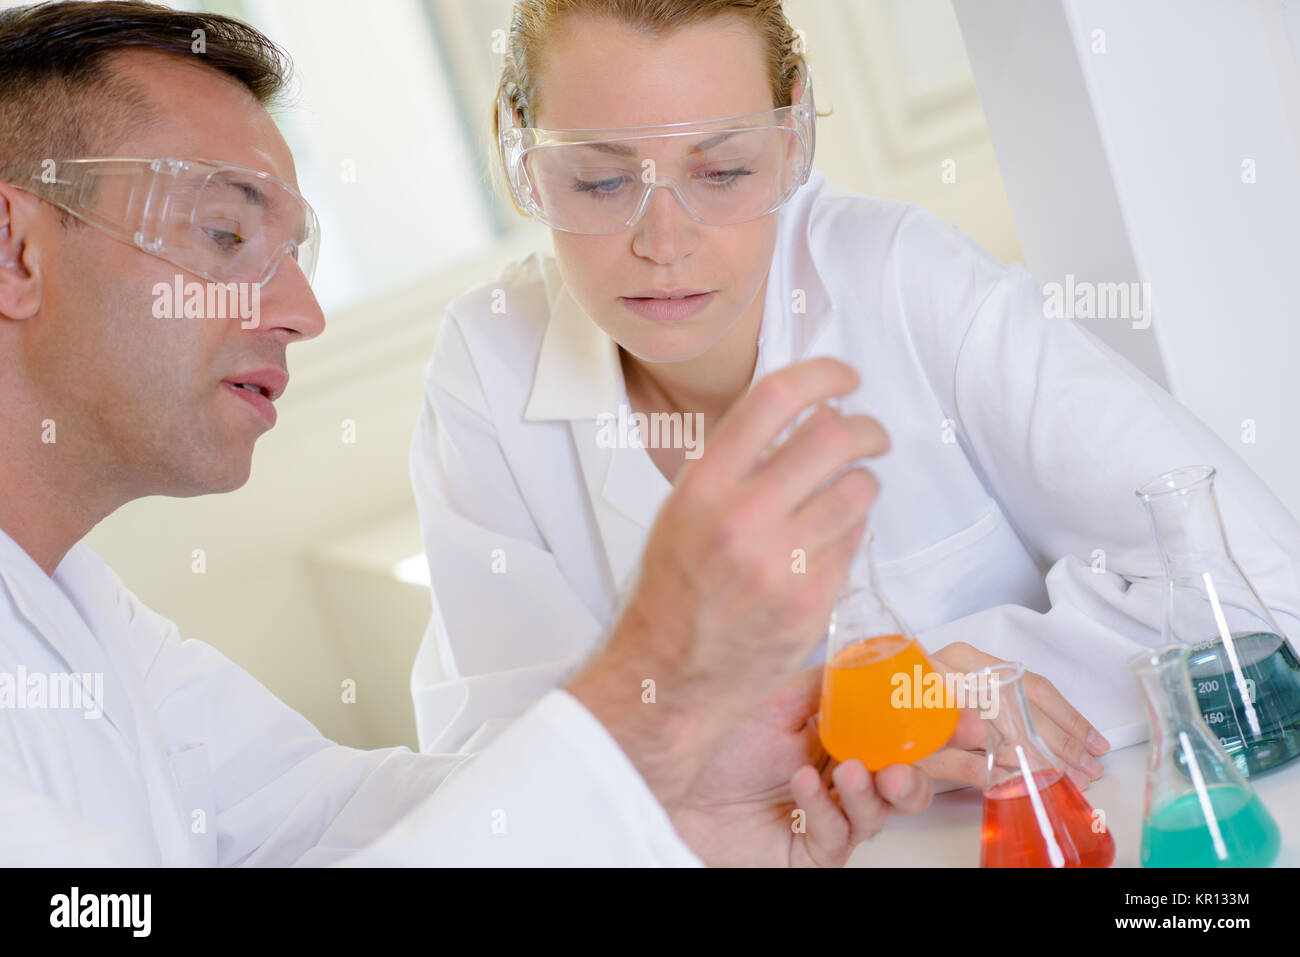 chemical experiments - Stock Image